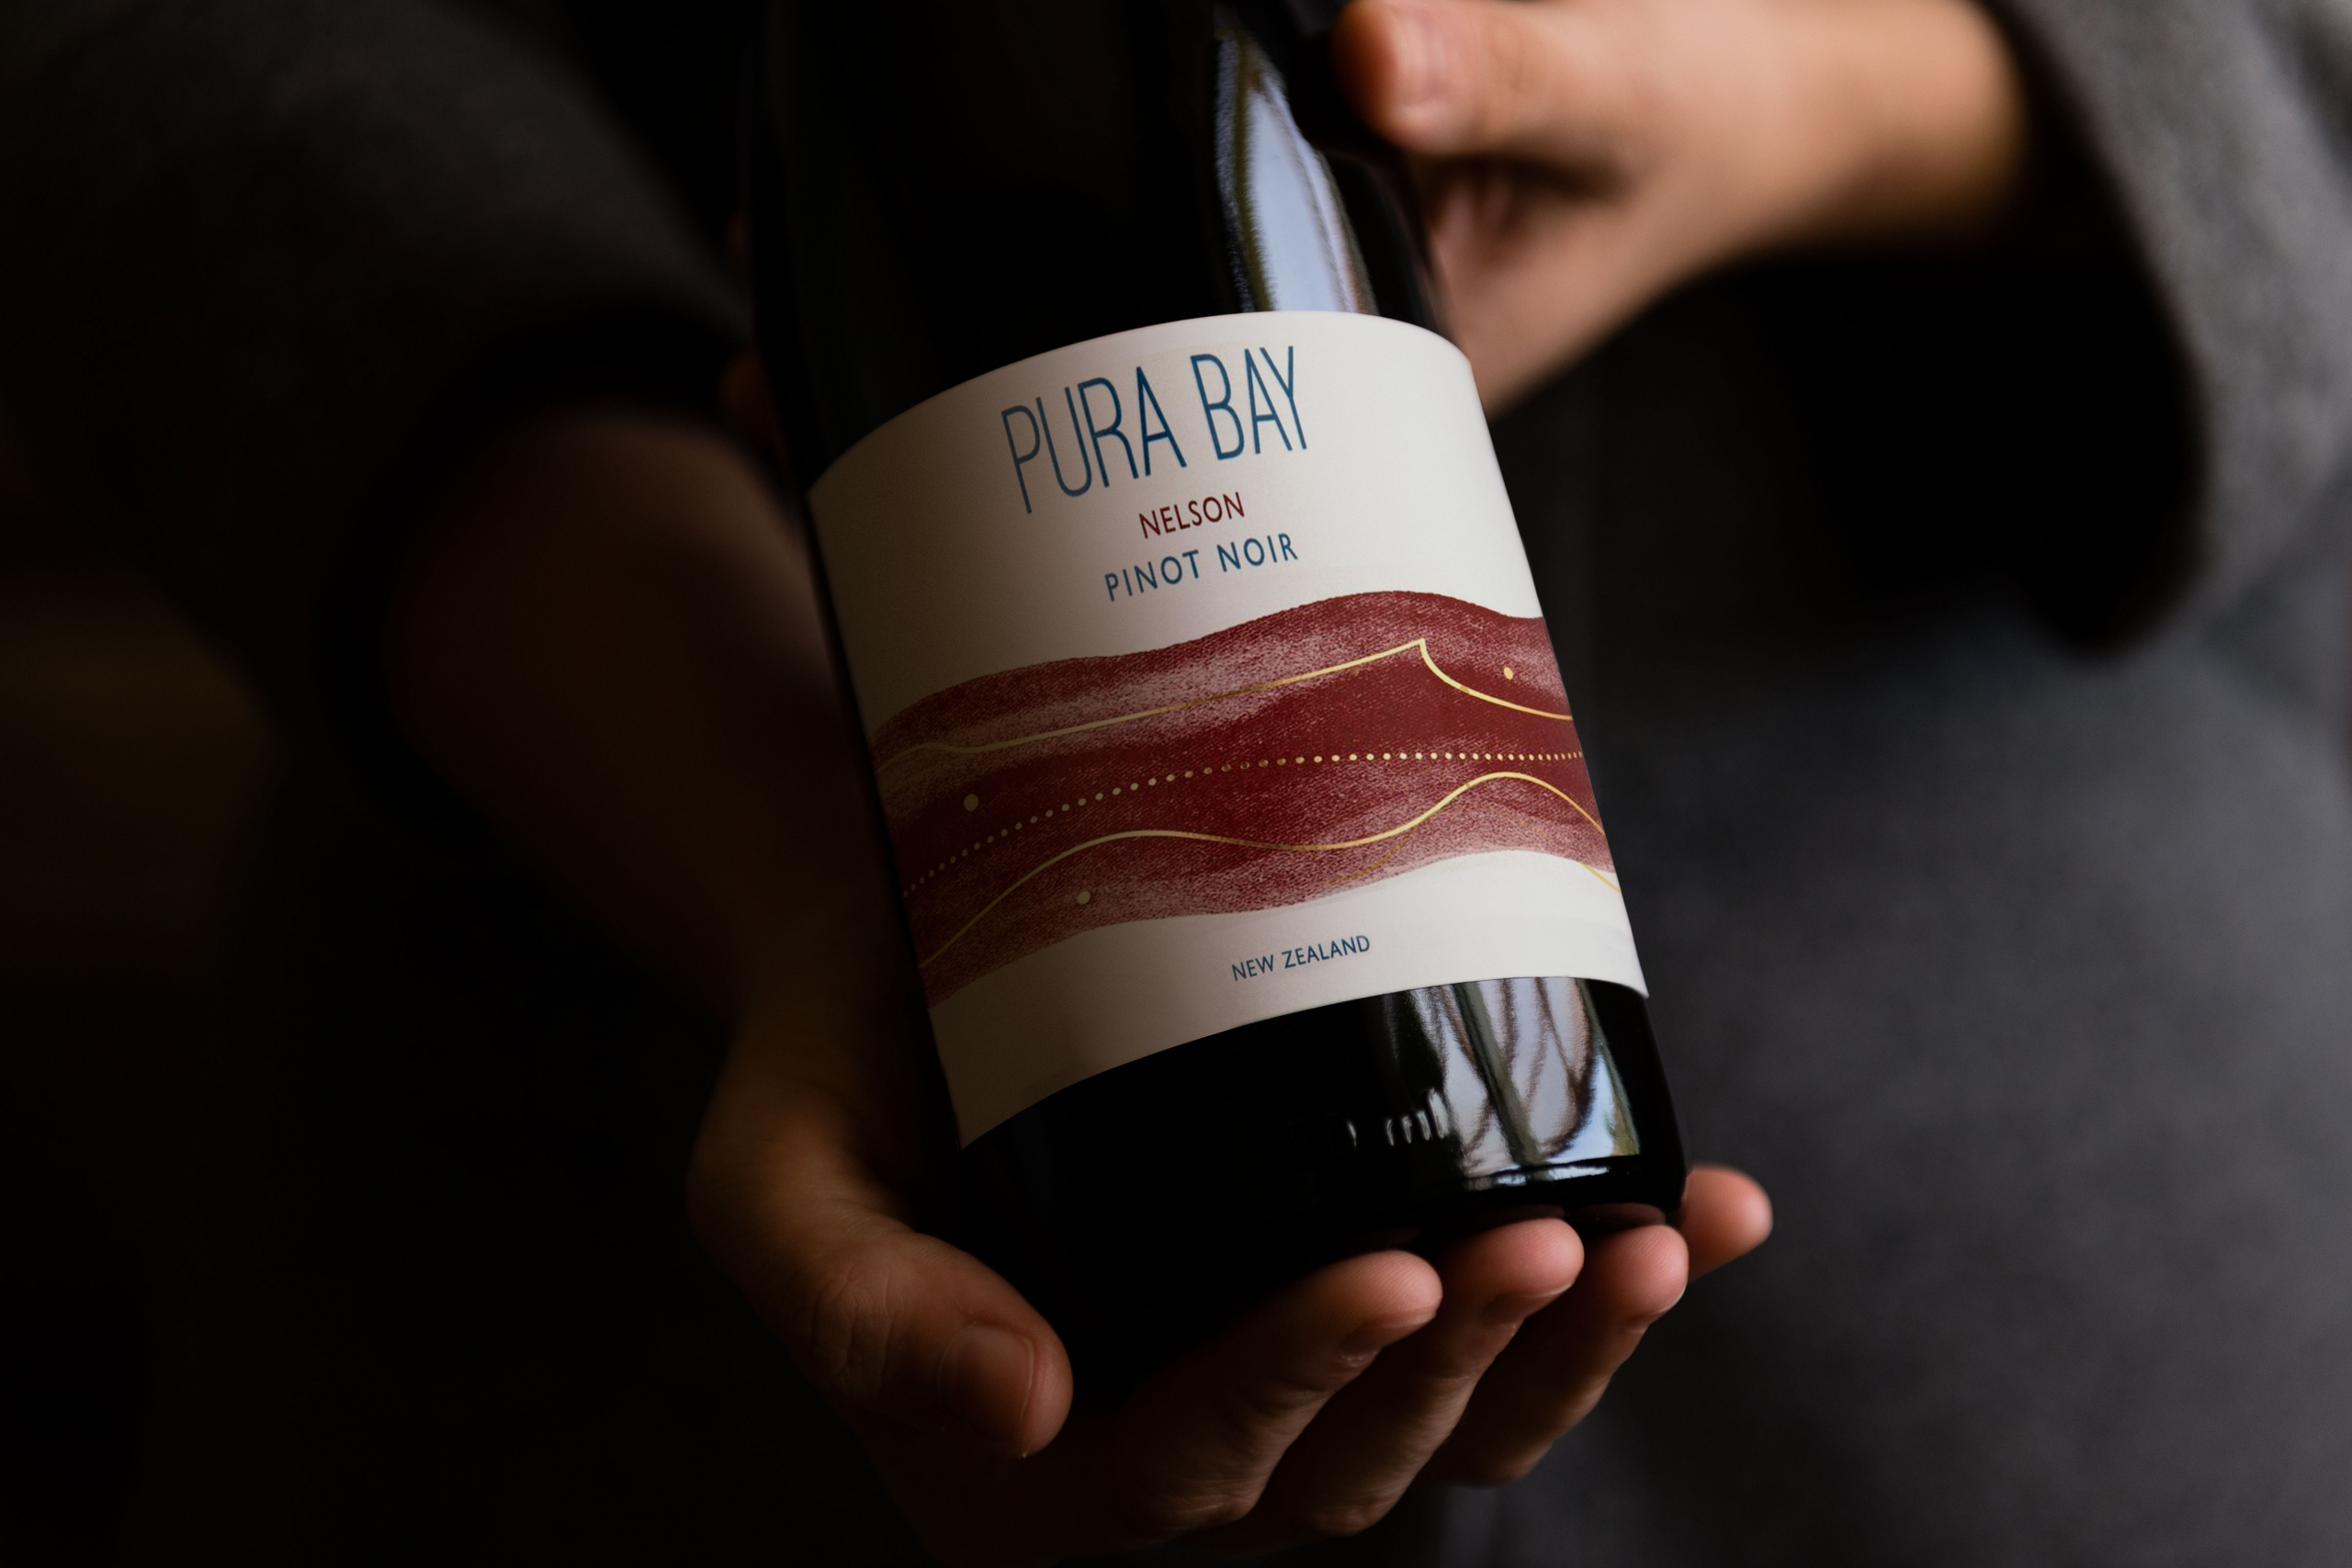 Pura Bay Pinot Noir Bottle Shot